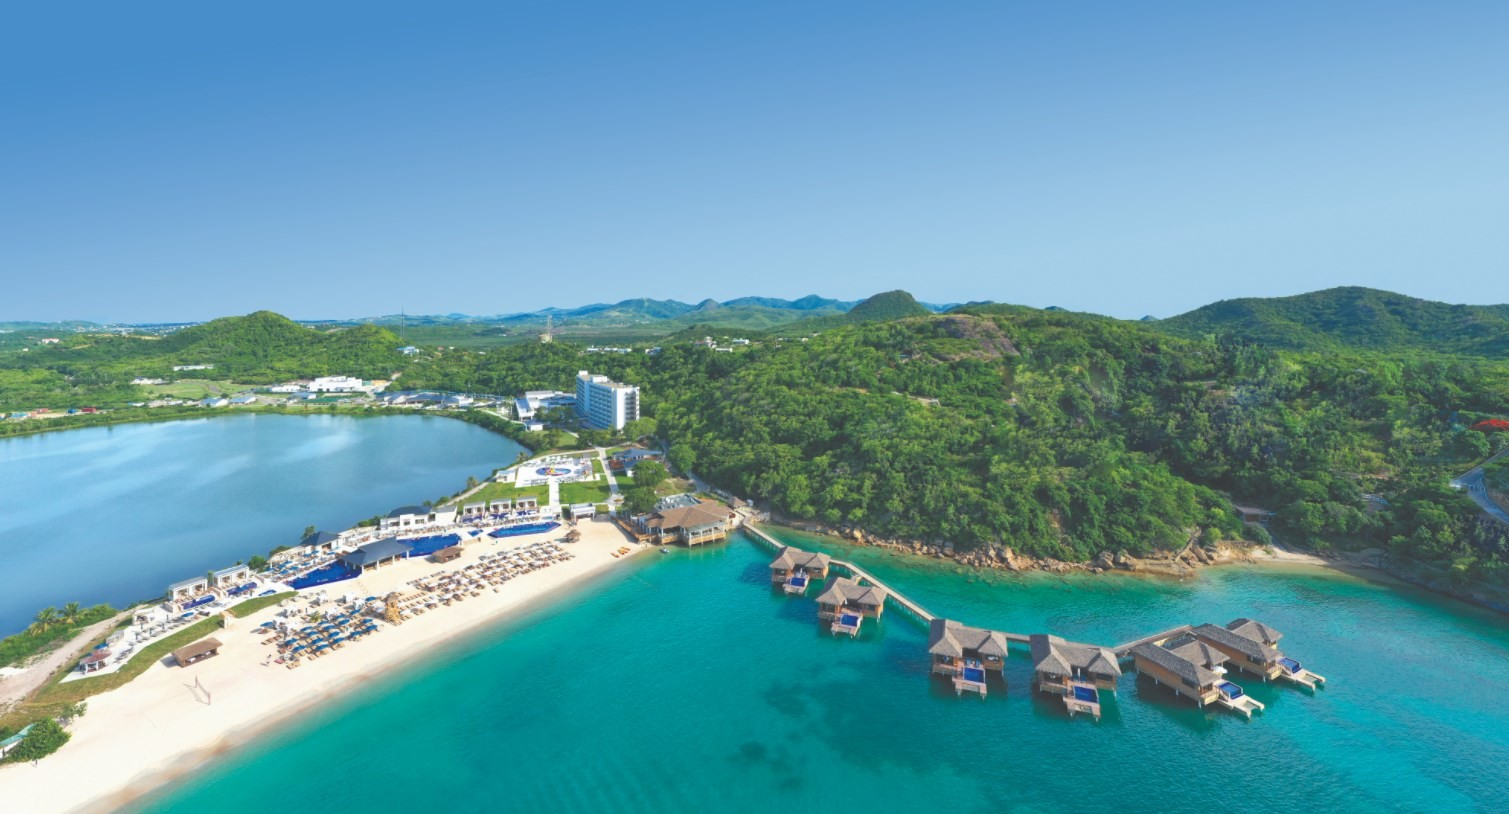 news-main-marriott-international-expects-to-more-than-double-all-inclusive-portfolio-in-an-agreement-with-sunwing-travel-group.1612960744.jpg